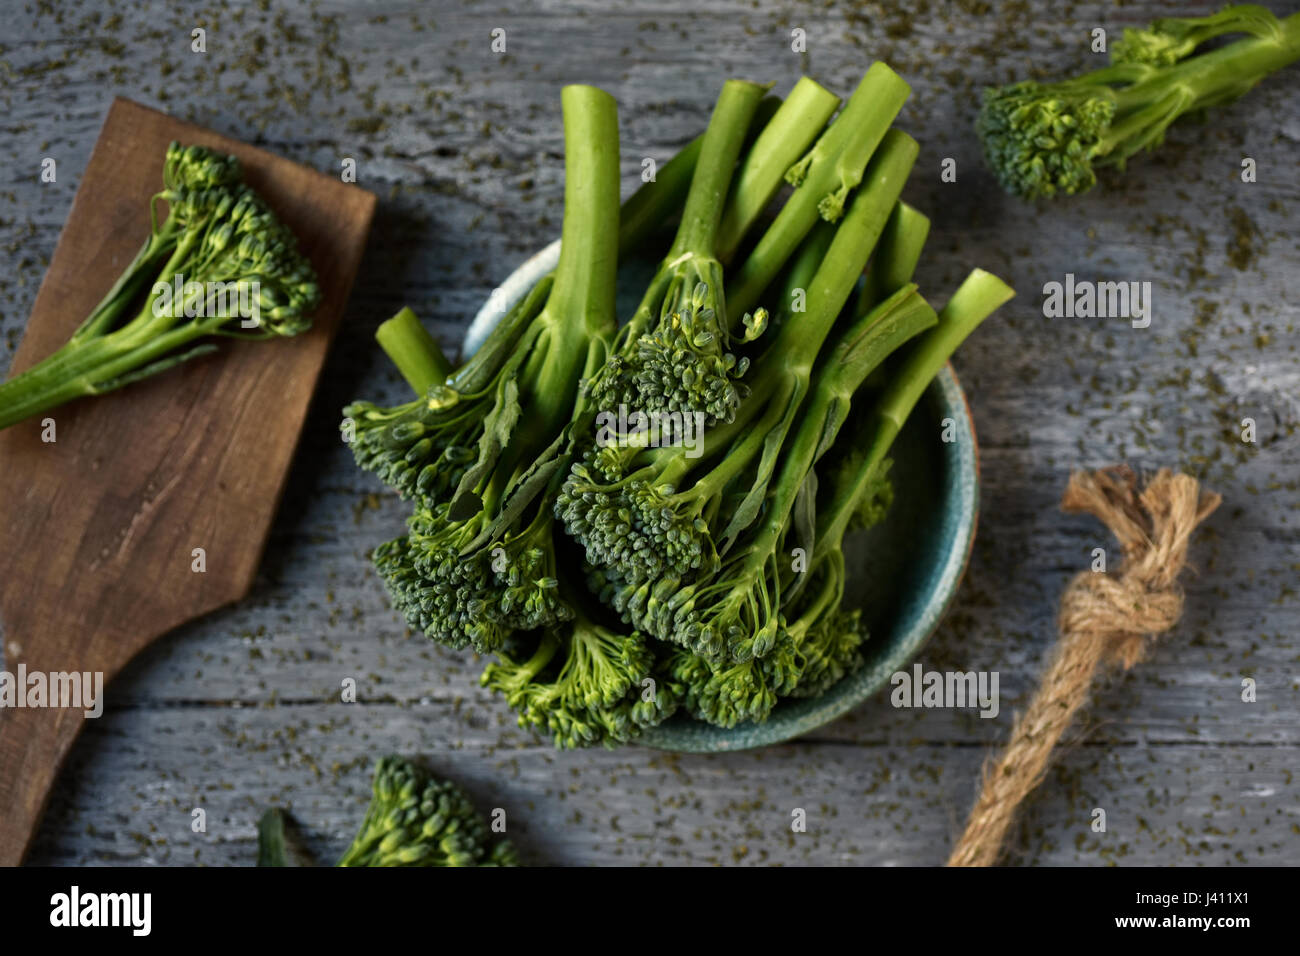 high-angle shot of some stems of broccolini in a green ceramic plate placed on a gray rustic wooden table - Stock Image